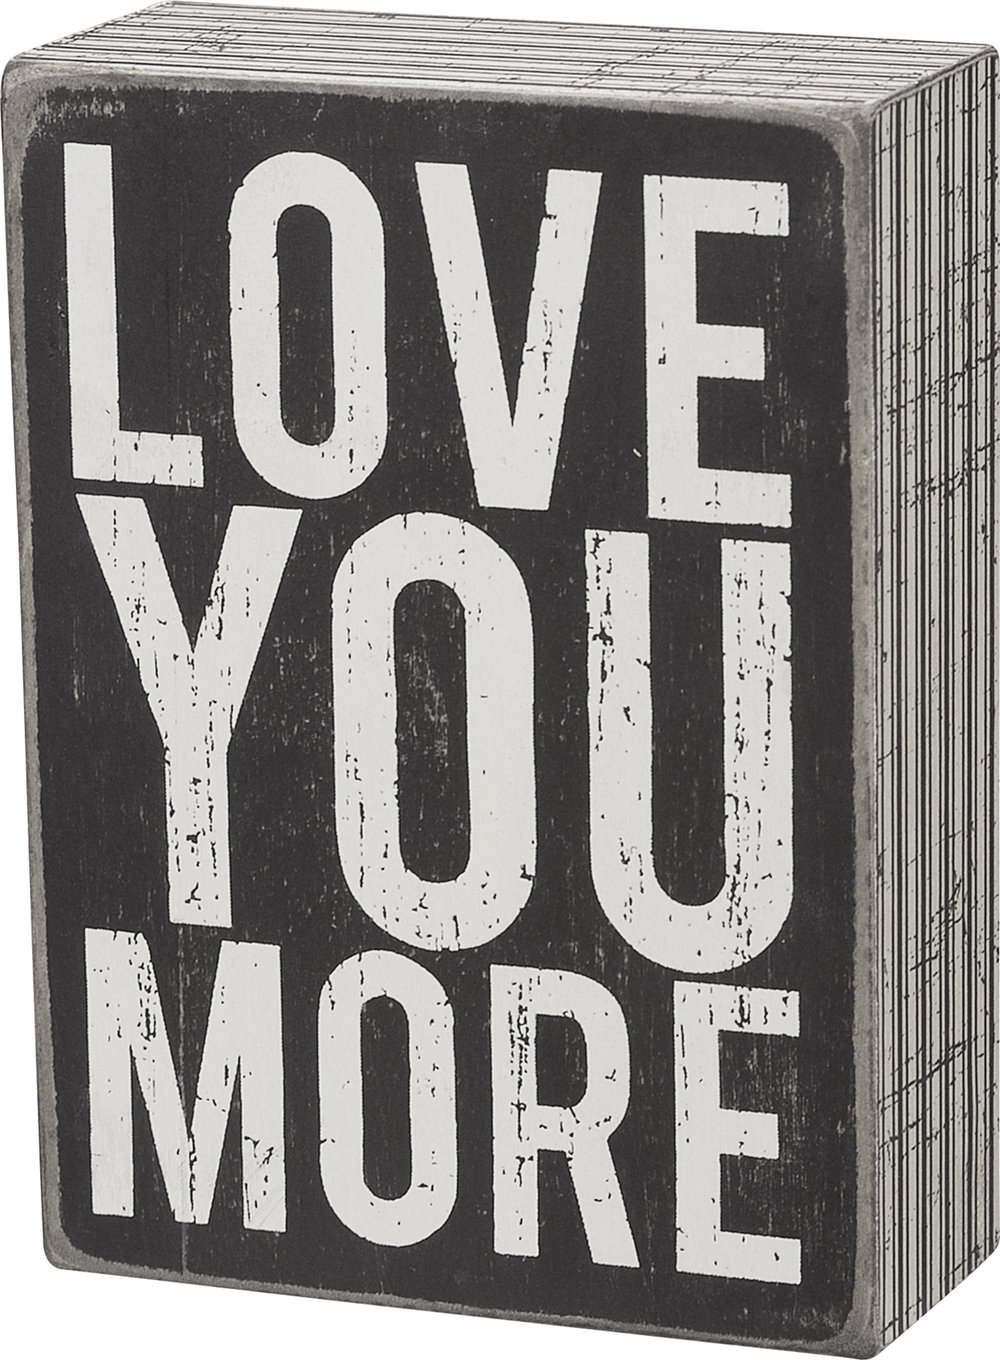 LOVE YOUR MORE' BOX SIGN $12